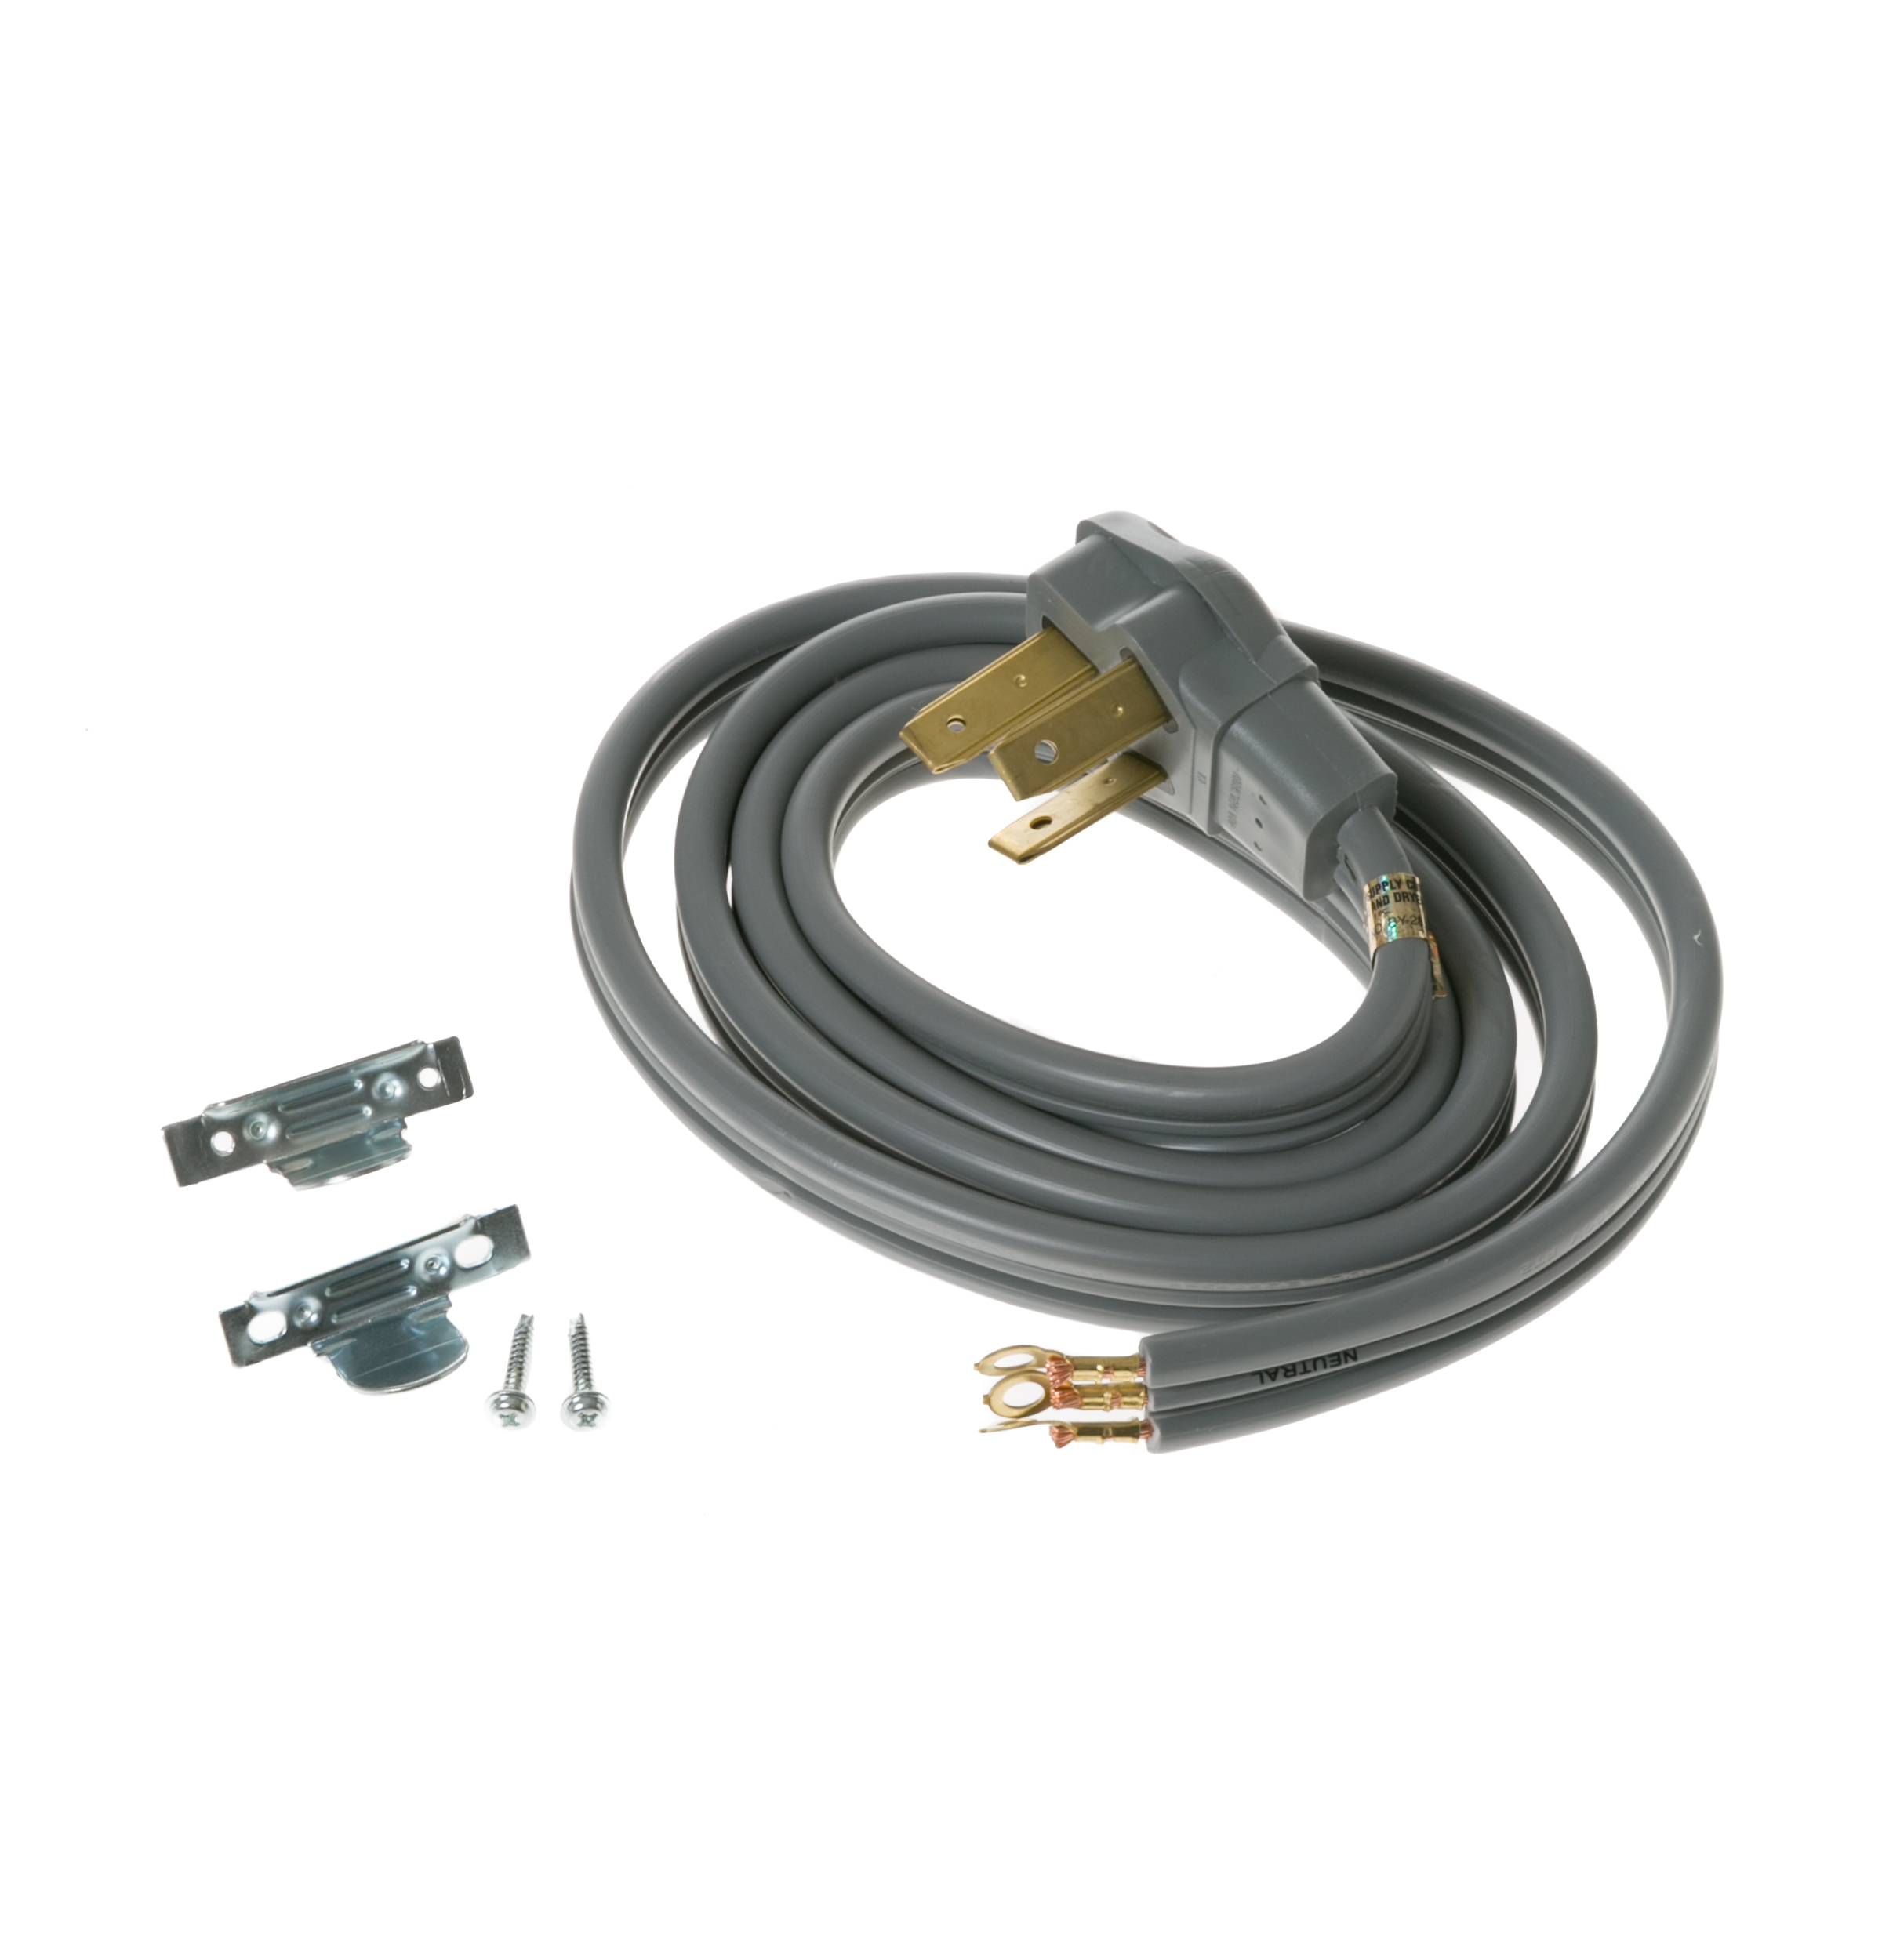 Wx09x10008 6 40amp 3 Wire Range Cord Ge Appliances Parts Wiring 4 Wires To A Plug Maytag Dryer Electrician Talk Product Image